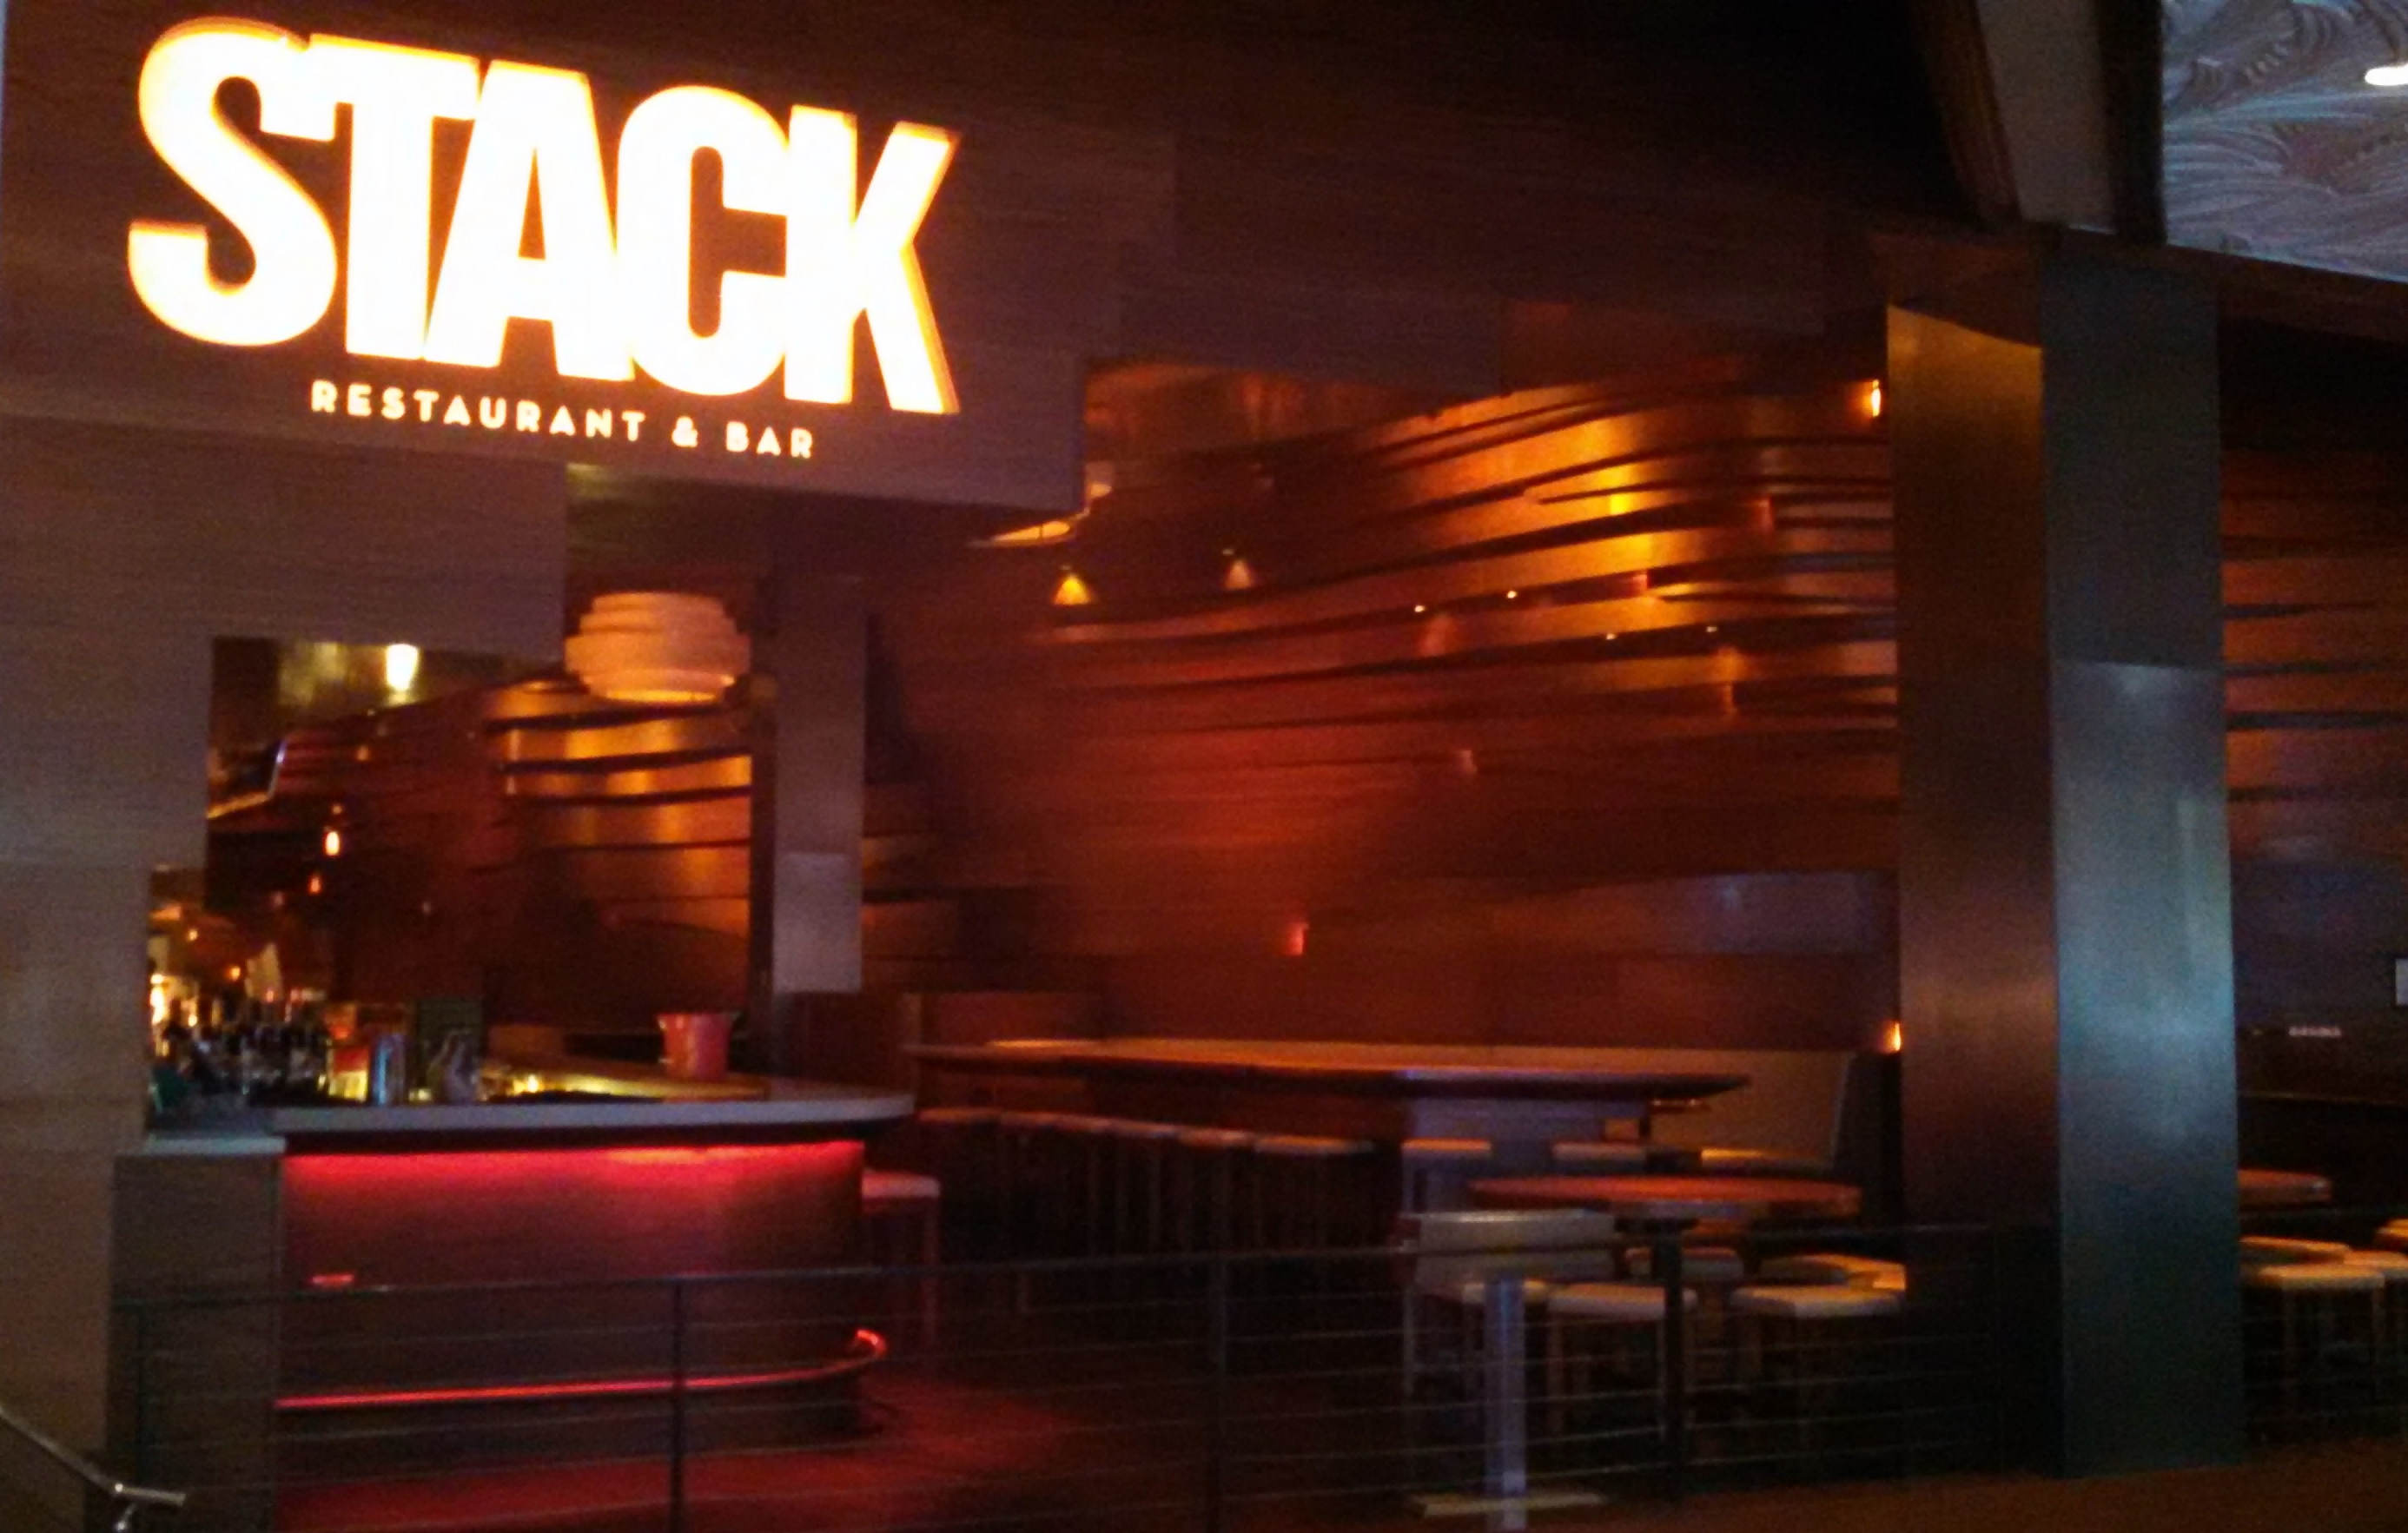 Stack Restaurant and Bar The Mirage